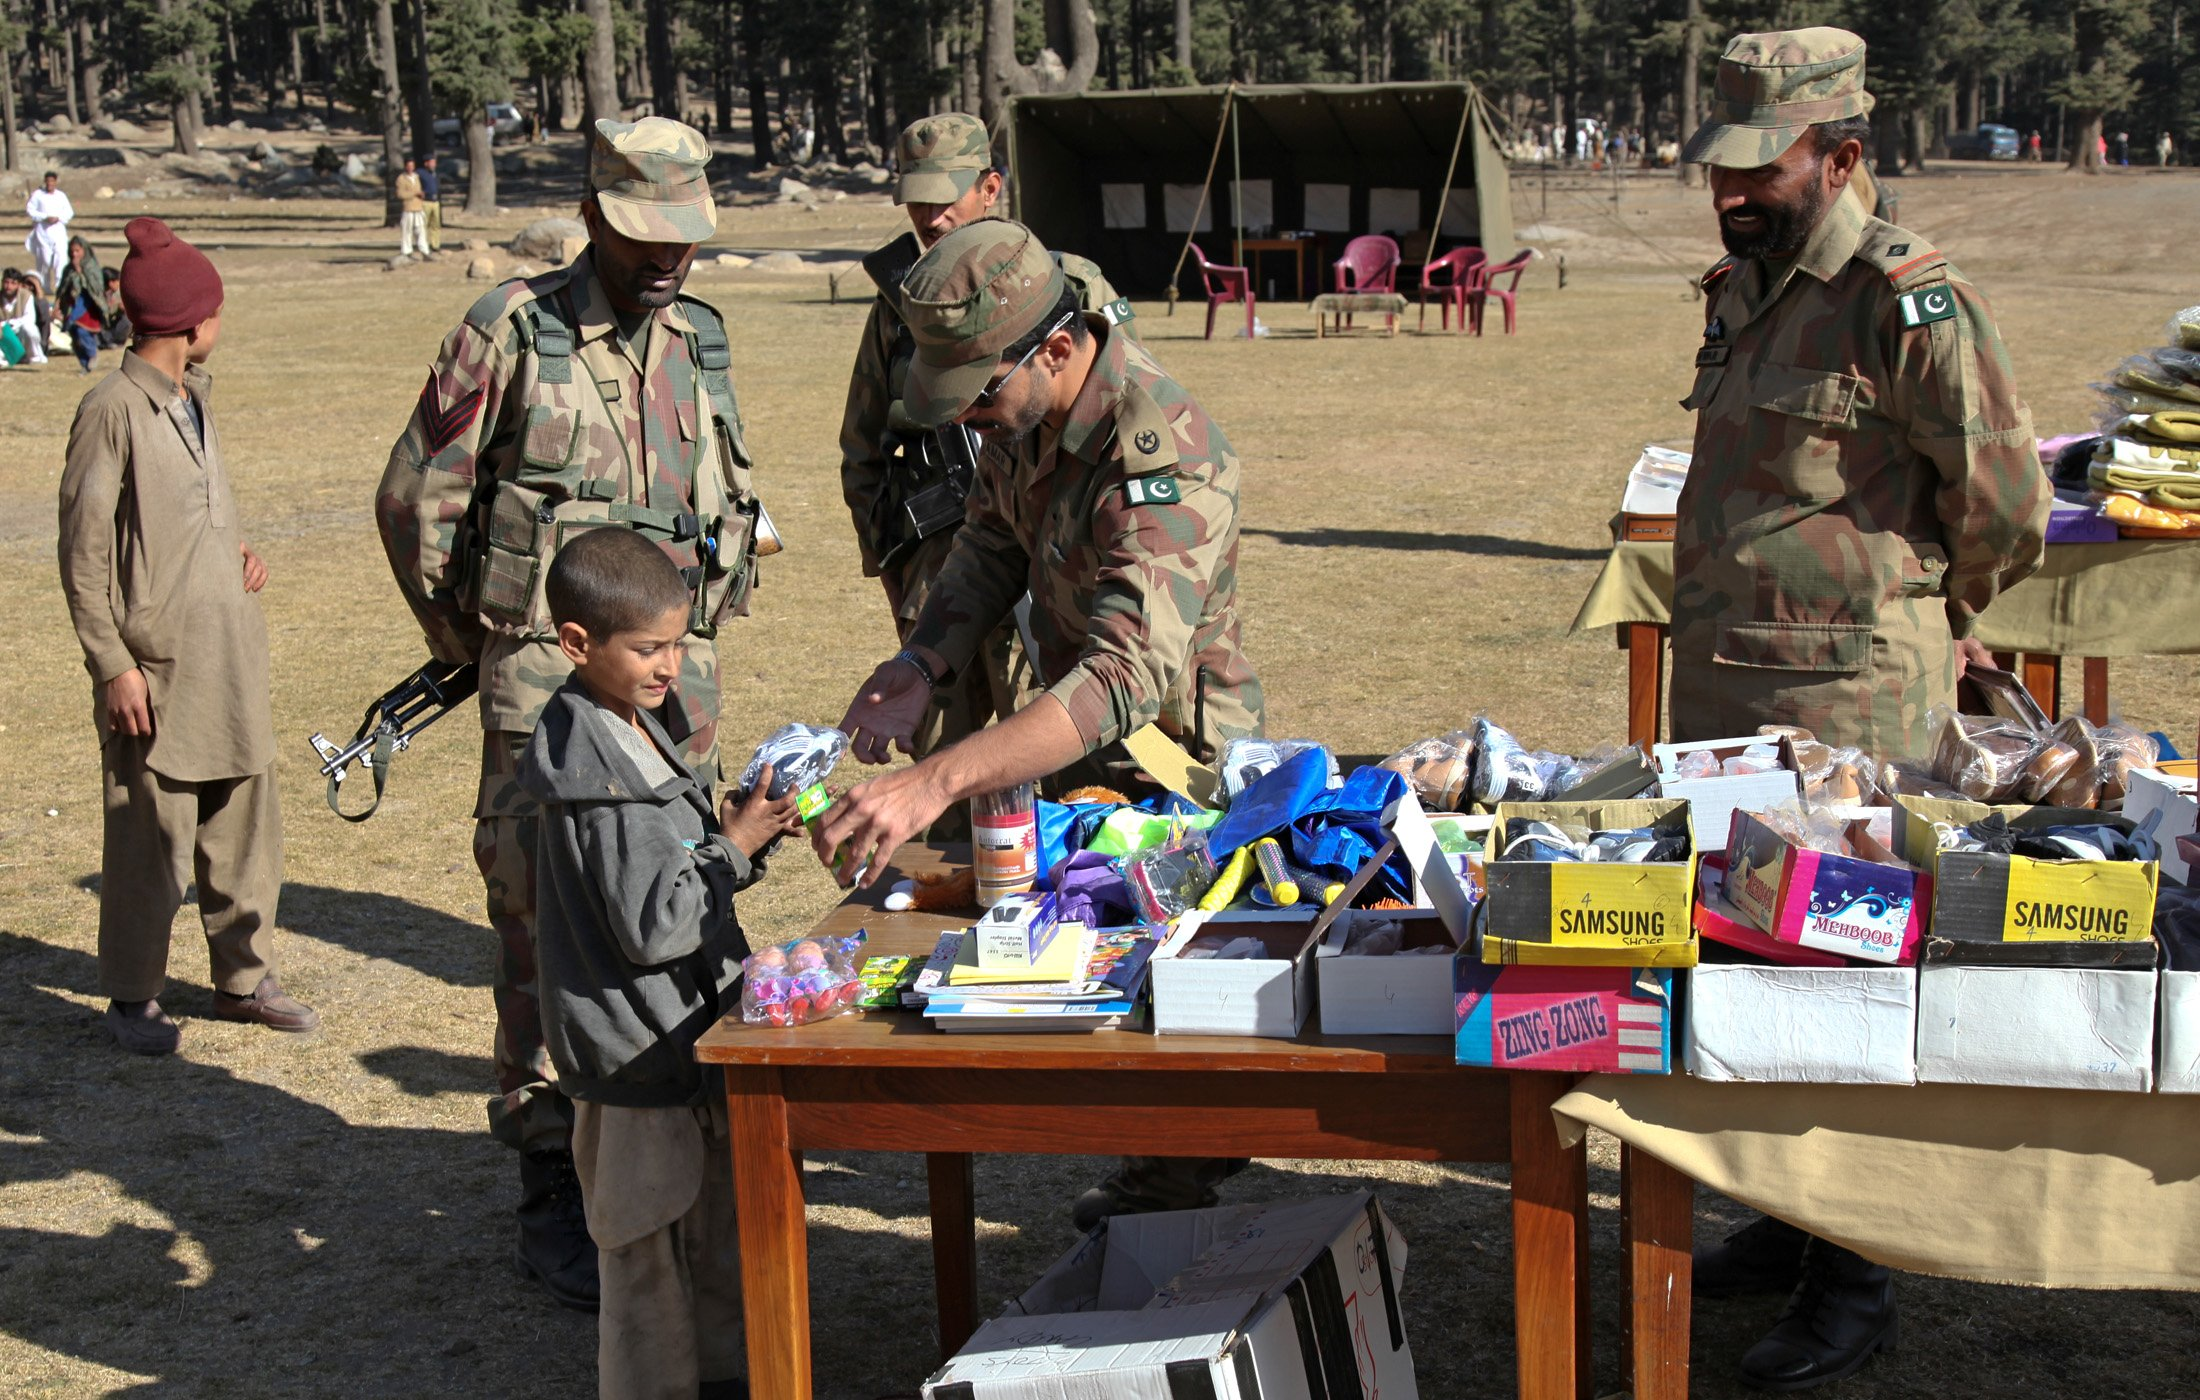 Pakistan soldiers passing out toys and shoes delivered by U.S. Army 16th Combat Aviation Brigade for flood relief in Swat Valley, Pakistan (November 24, 2010)